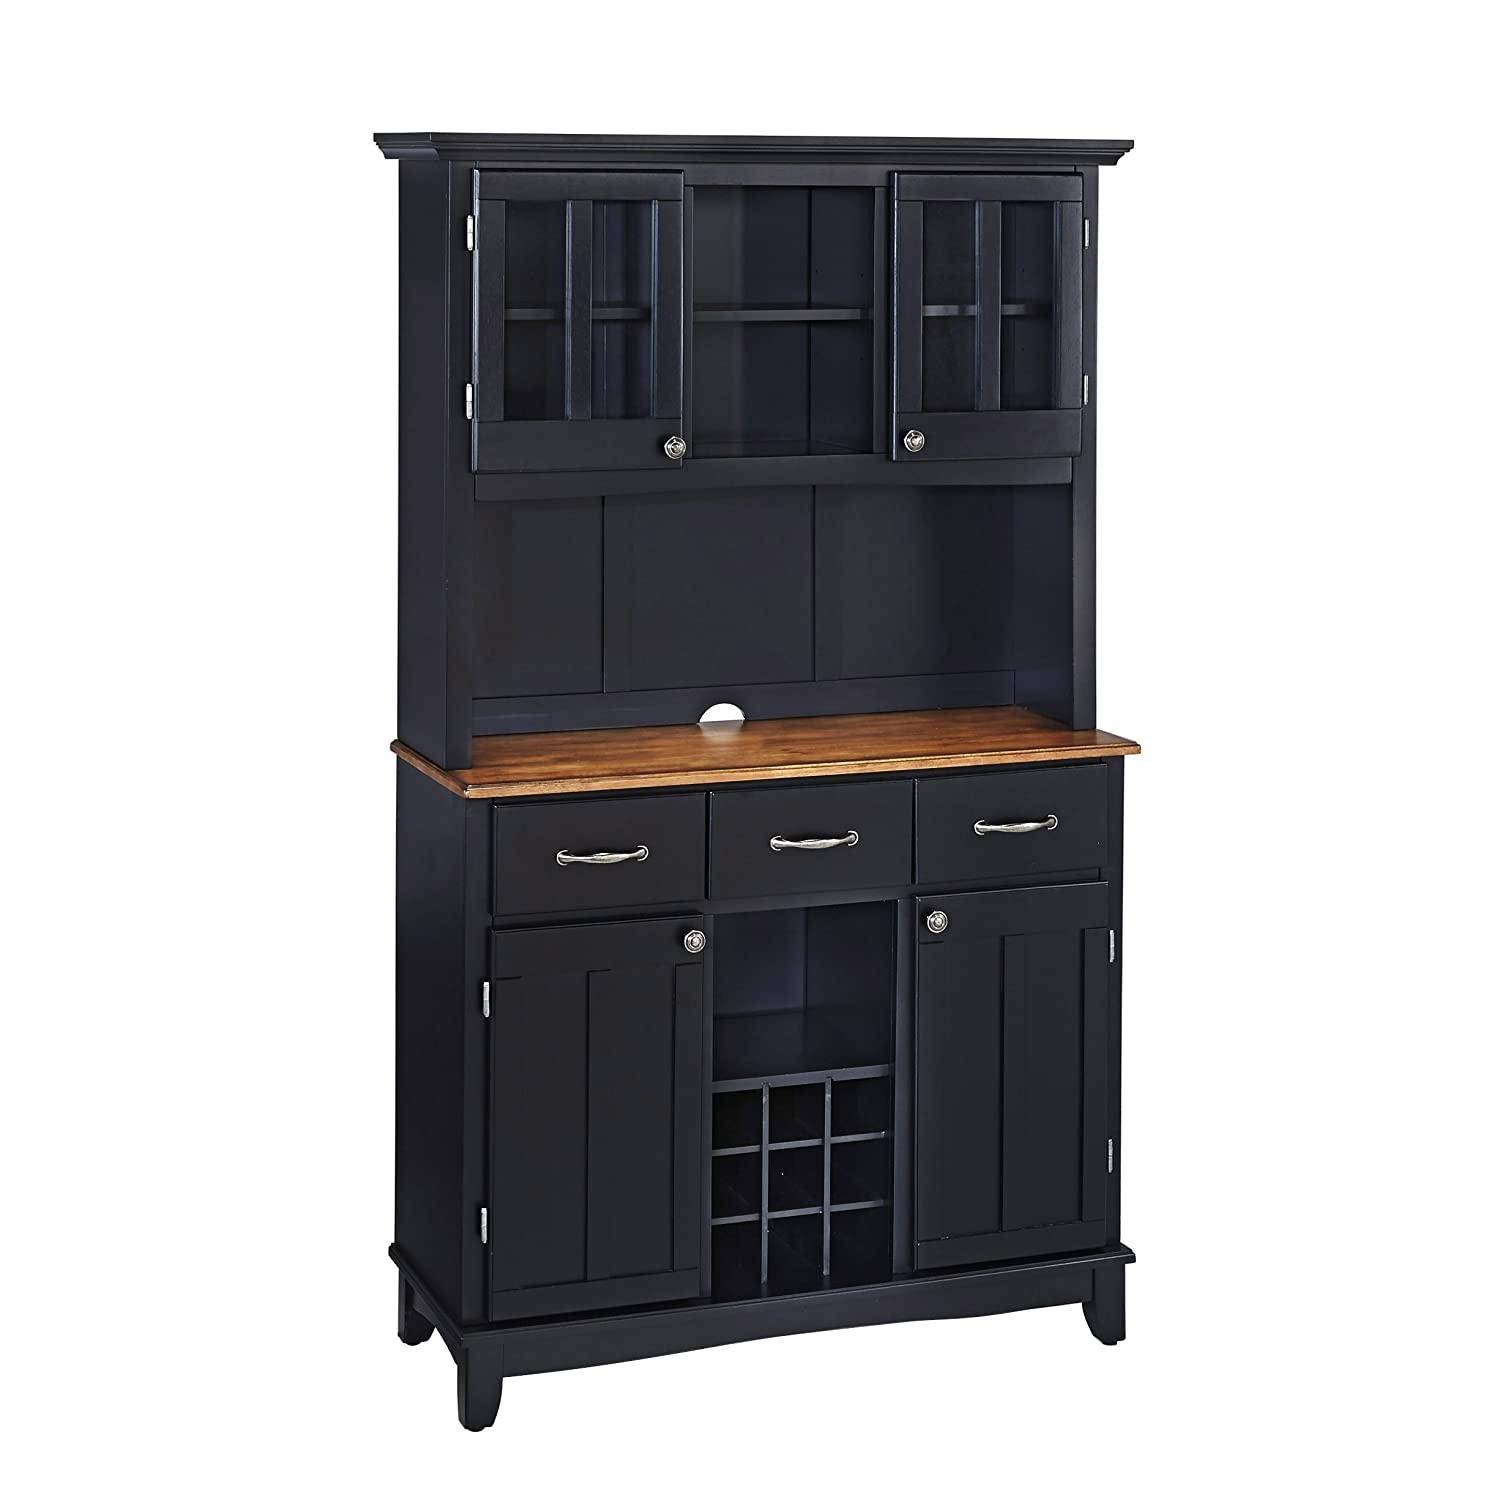 Home Styles 5100-0046-42 Buffet of Buffets Cottage Oak Wood Top Buffet with Hutch - Black Finish - 41-3-4-Inch